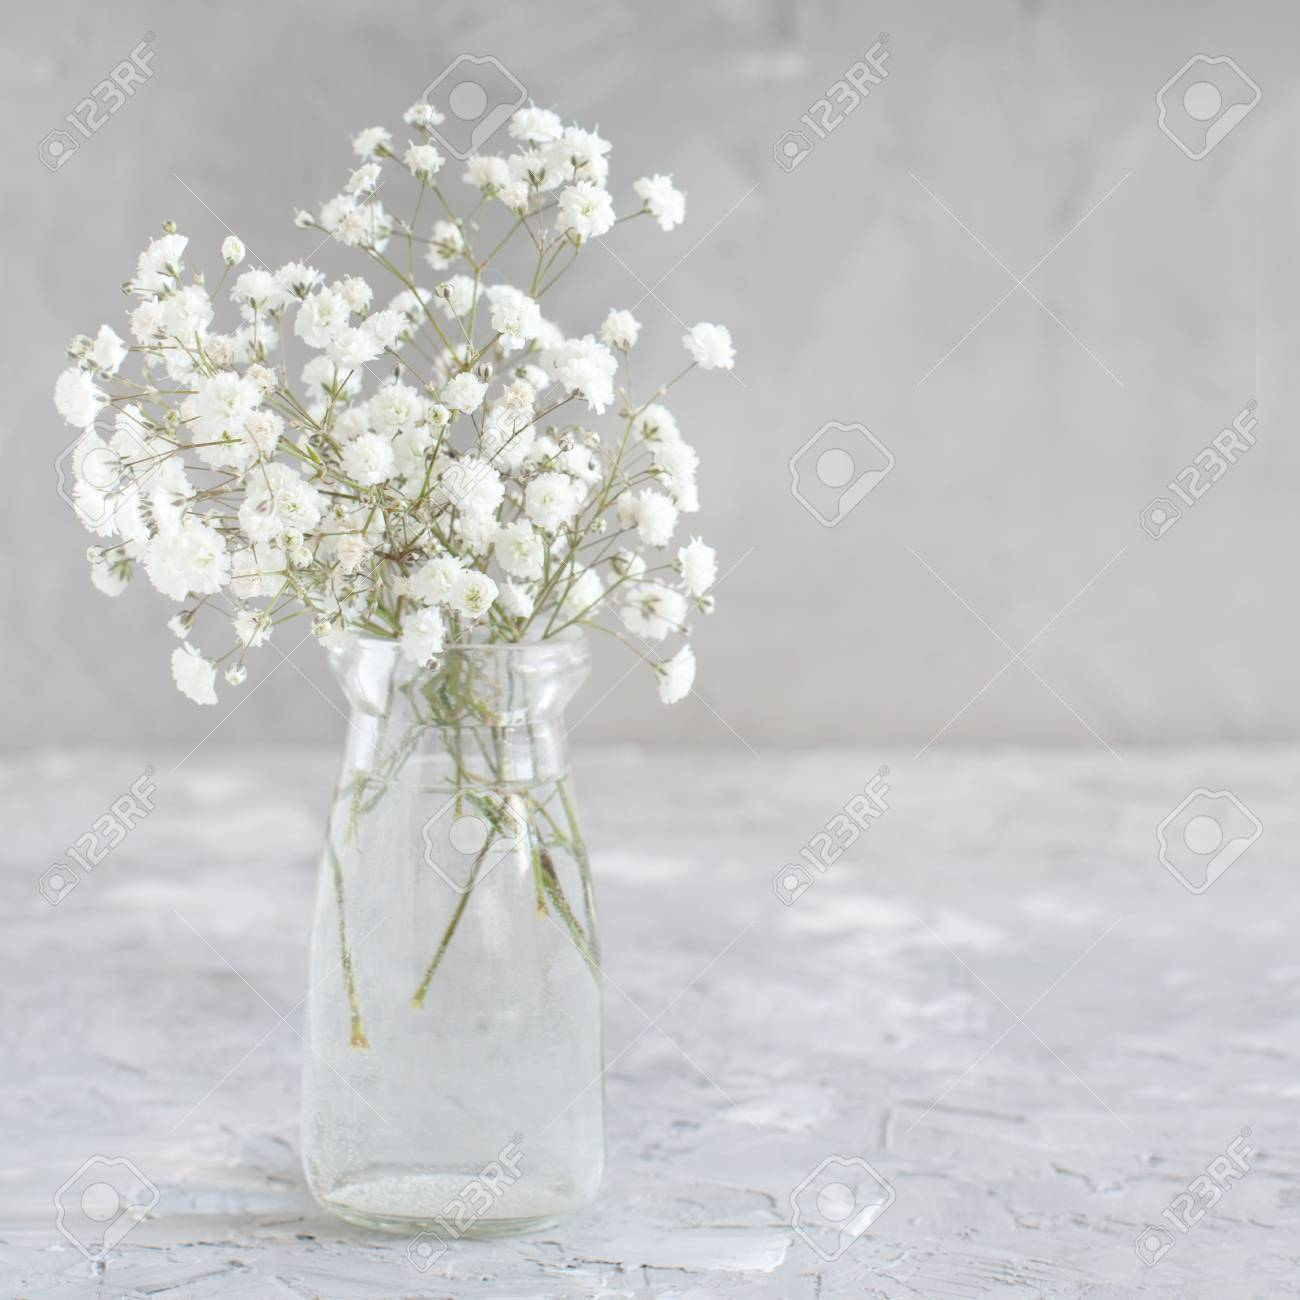 Bouquet Of Small White Flowers In A Jar On A Grey Background Stock Photo Picture And Royalty Free Image Image 115002429